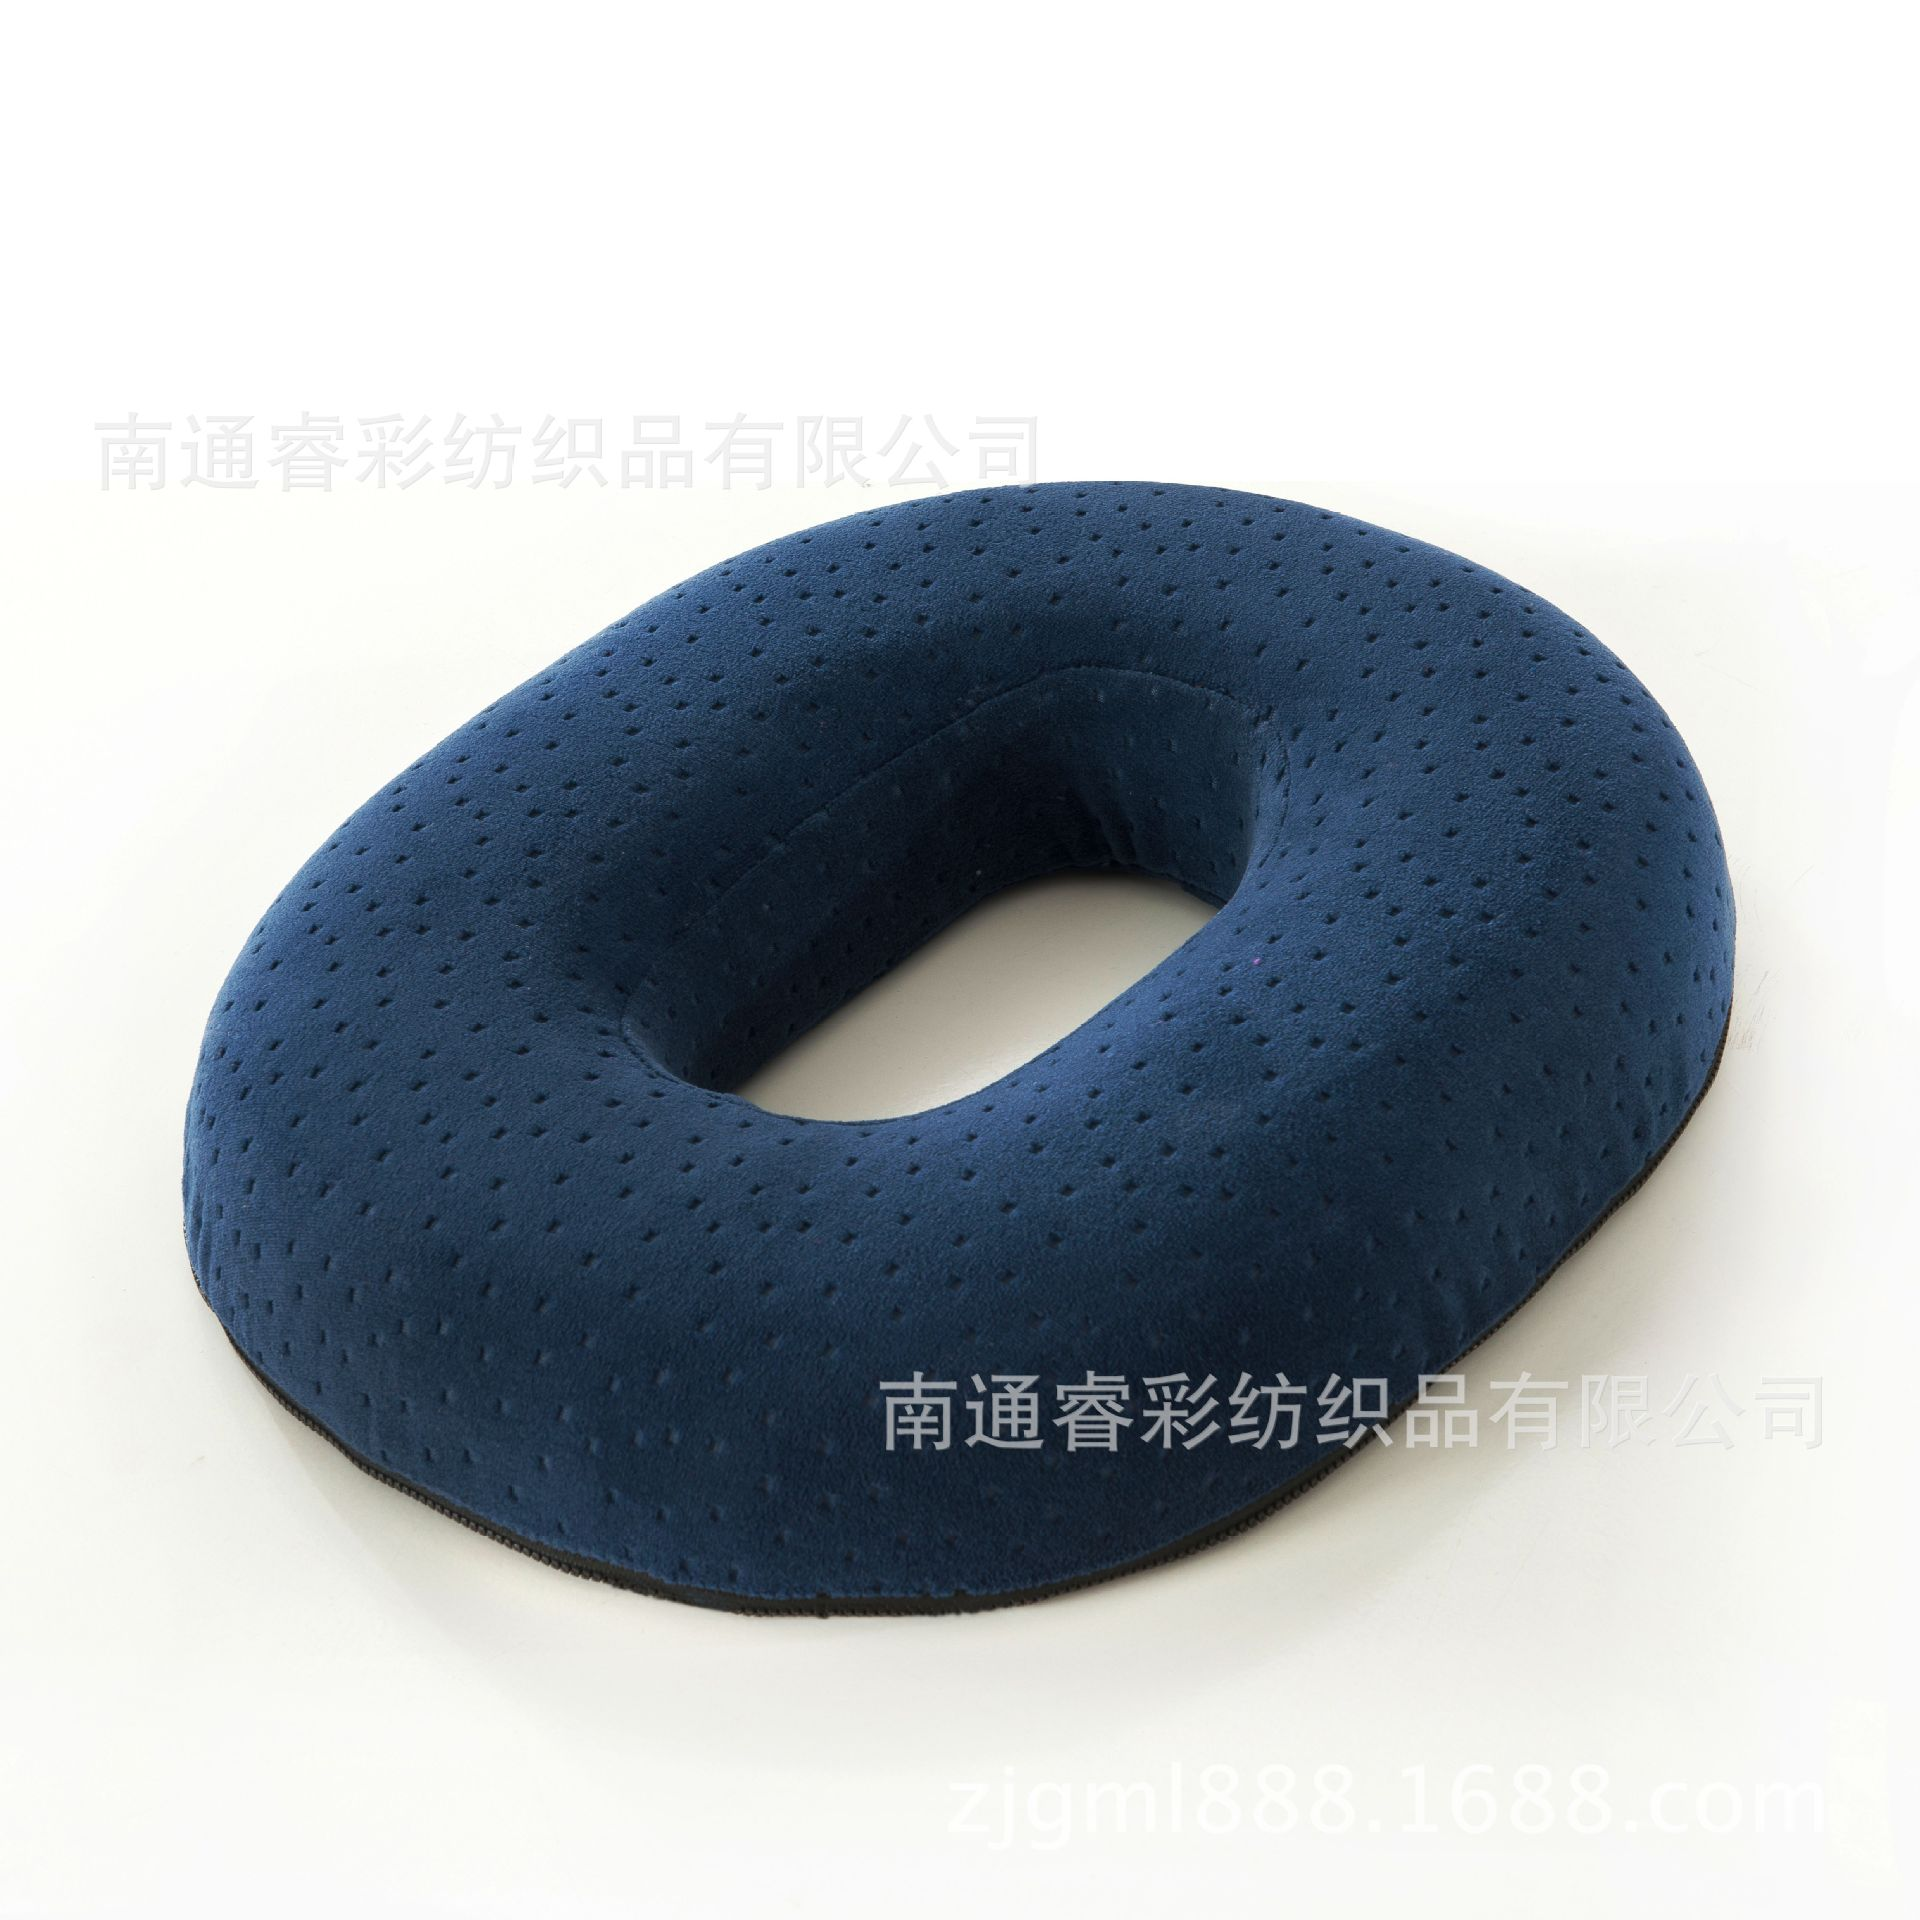 cushion Hemorrhoids cushion High resilience cushion hollow postoperative pad prostate coccygeal vertebra before contact prostate health devices is prostate removal prostatitis mainly for the prostate health and prostatitis health capsule